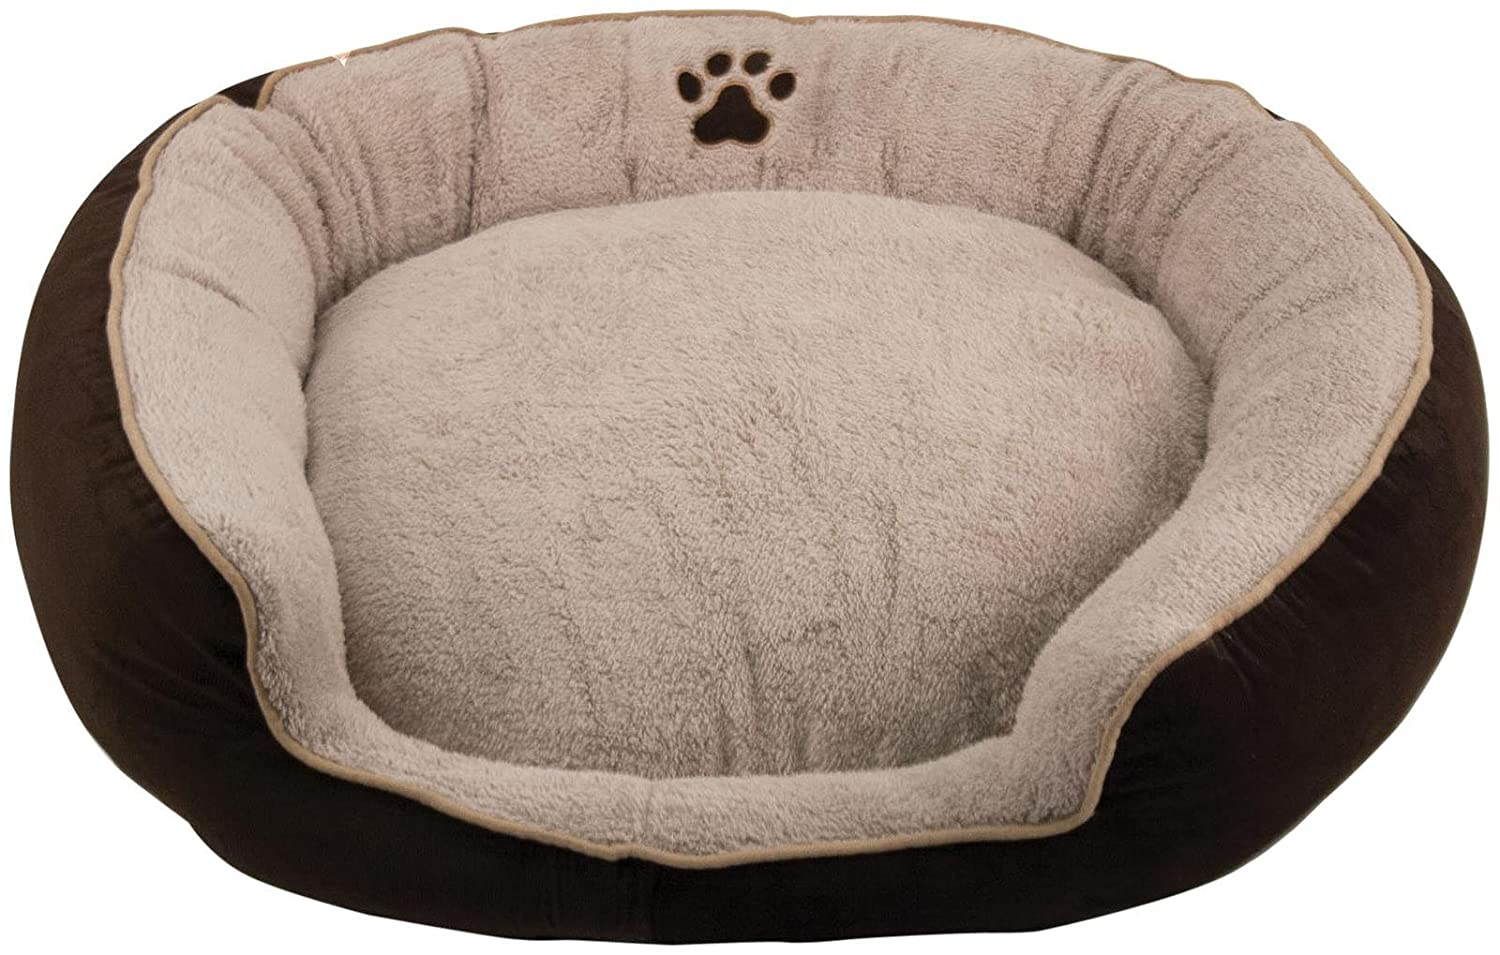 Brinkmann Pet Pinwale Cord Stepover Bolster Bed with Micredec Sleep Surface Brown 36 by Brinkmann Pet